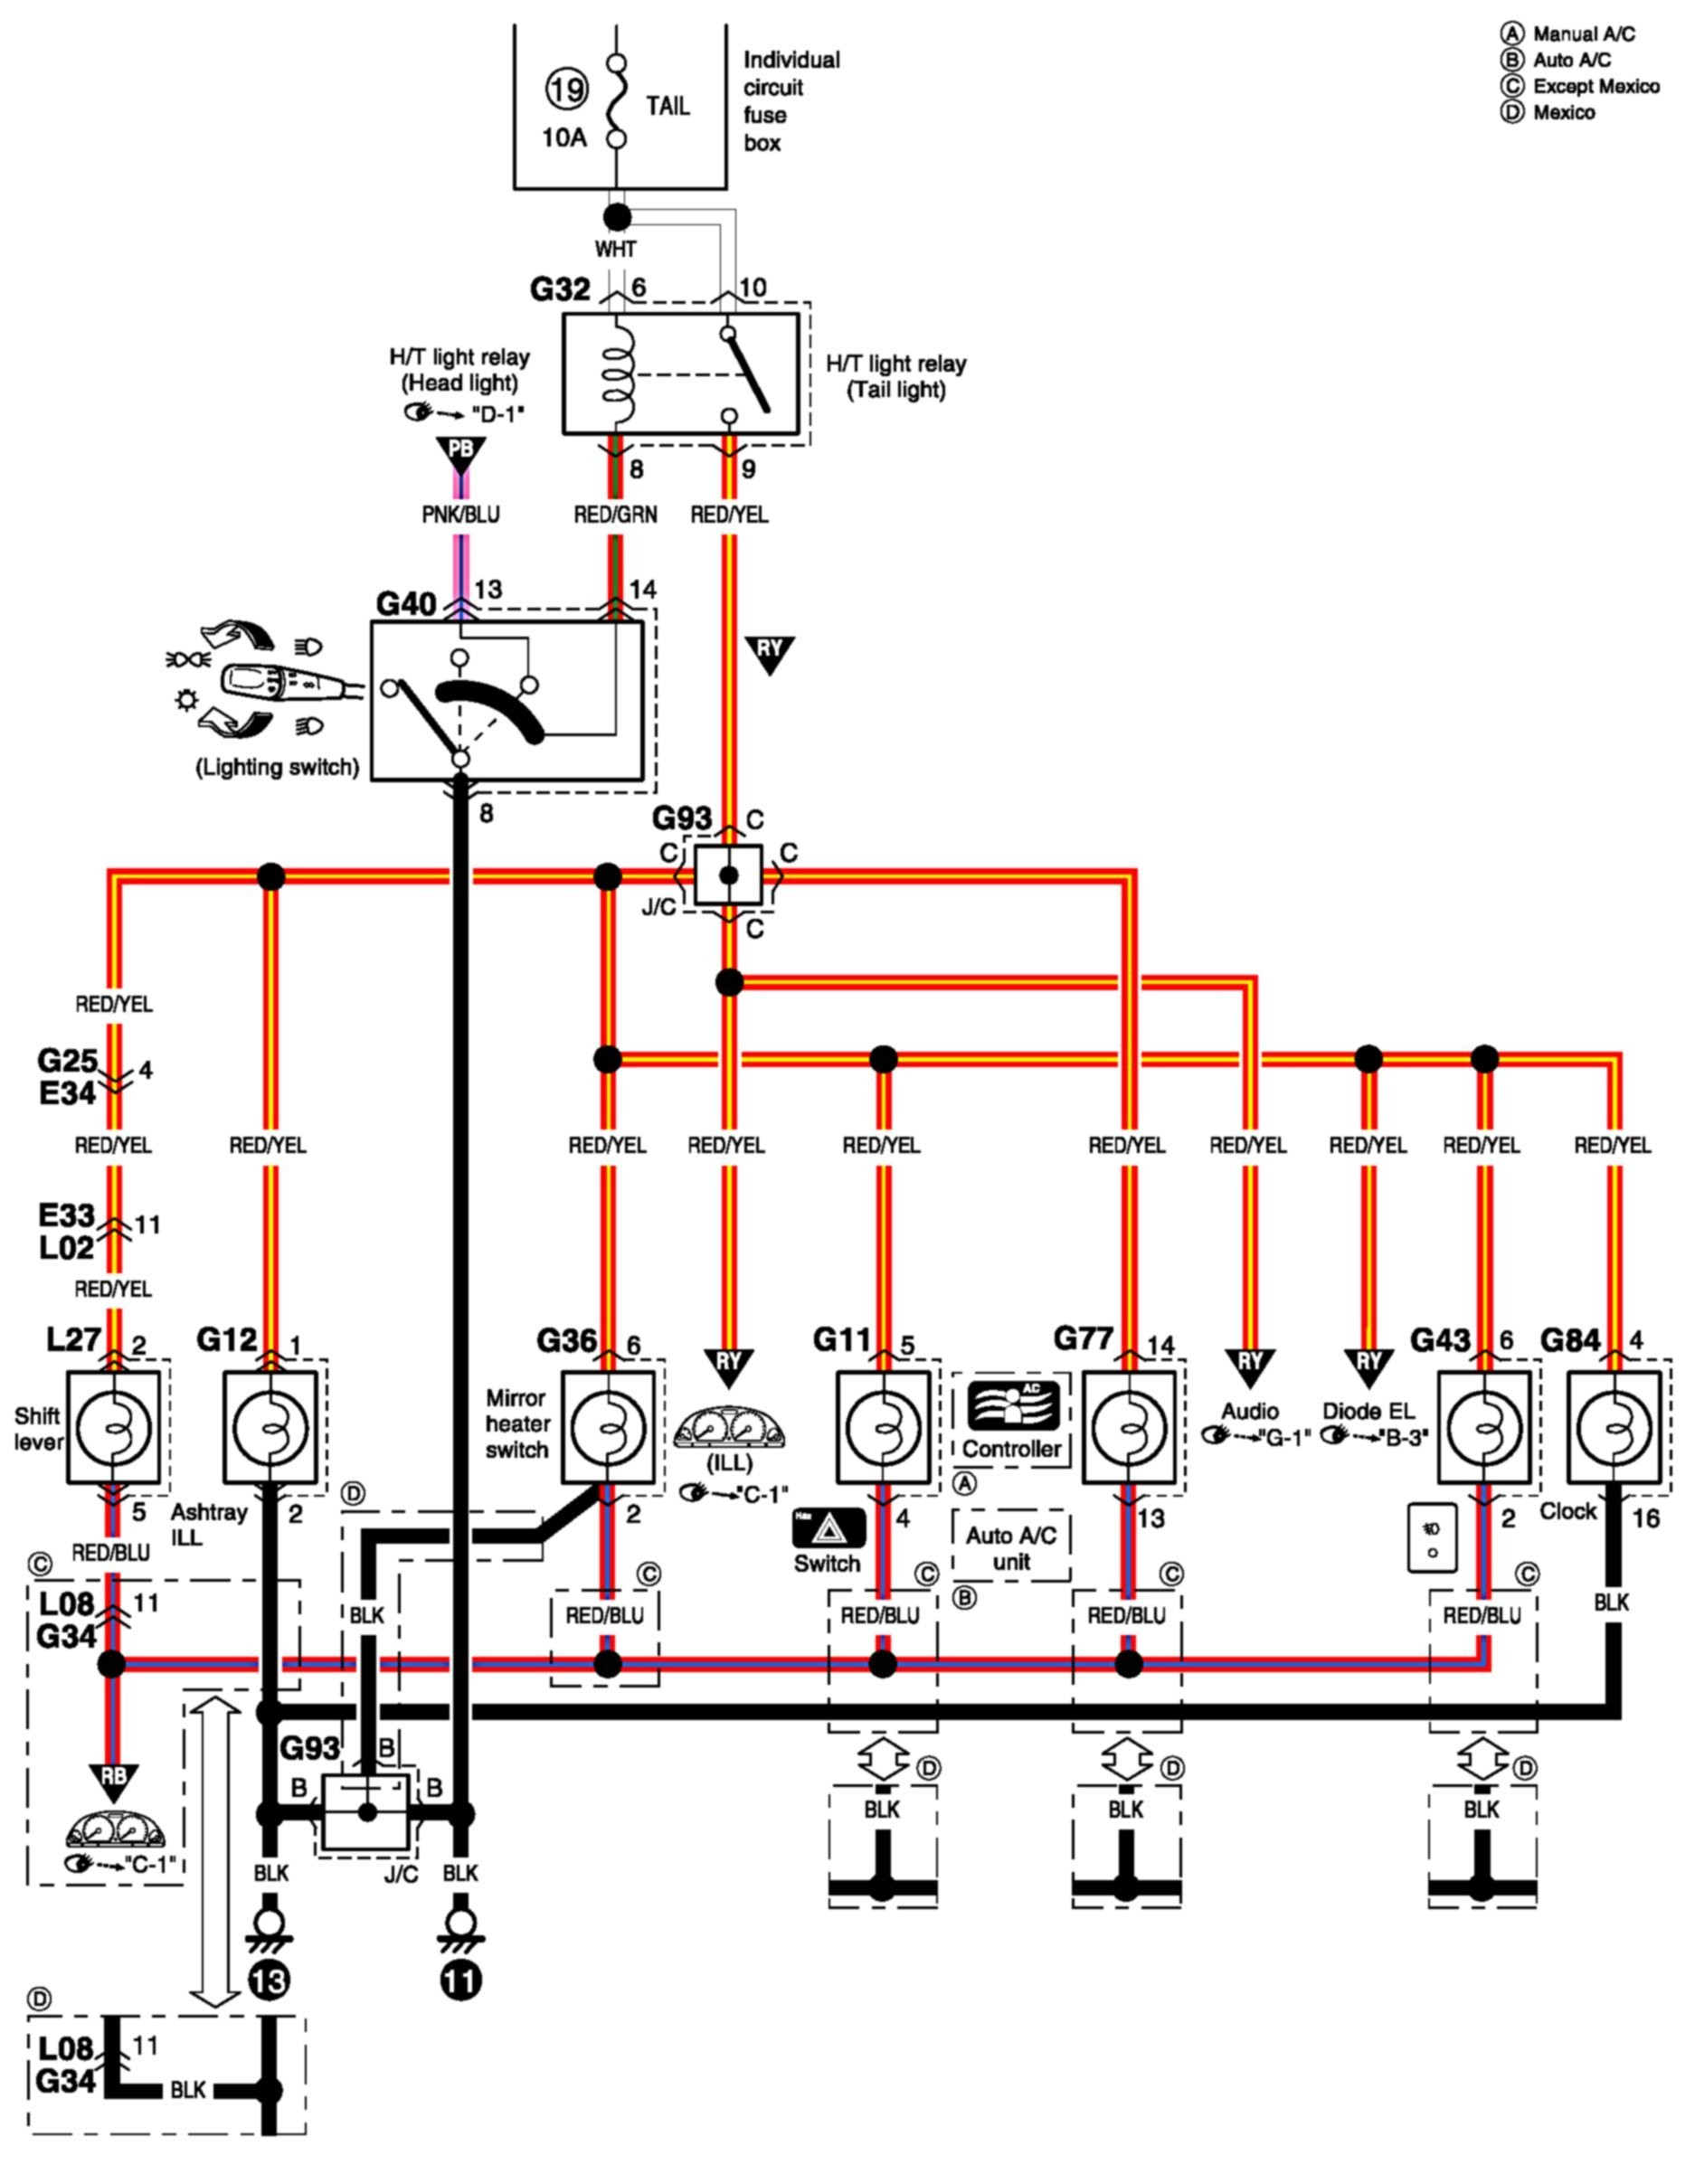 Transmission Circuit Schematic 2007 Suzuki forenza 2003 Suzuki Aerio Wiring Diagram Full Hd Version Wiring Of Transmission Circuit Schematic 2007 Suzuki forenza